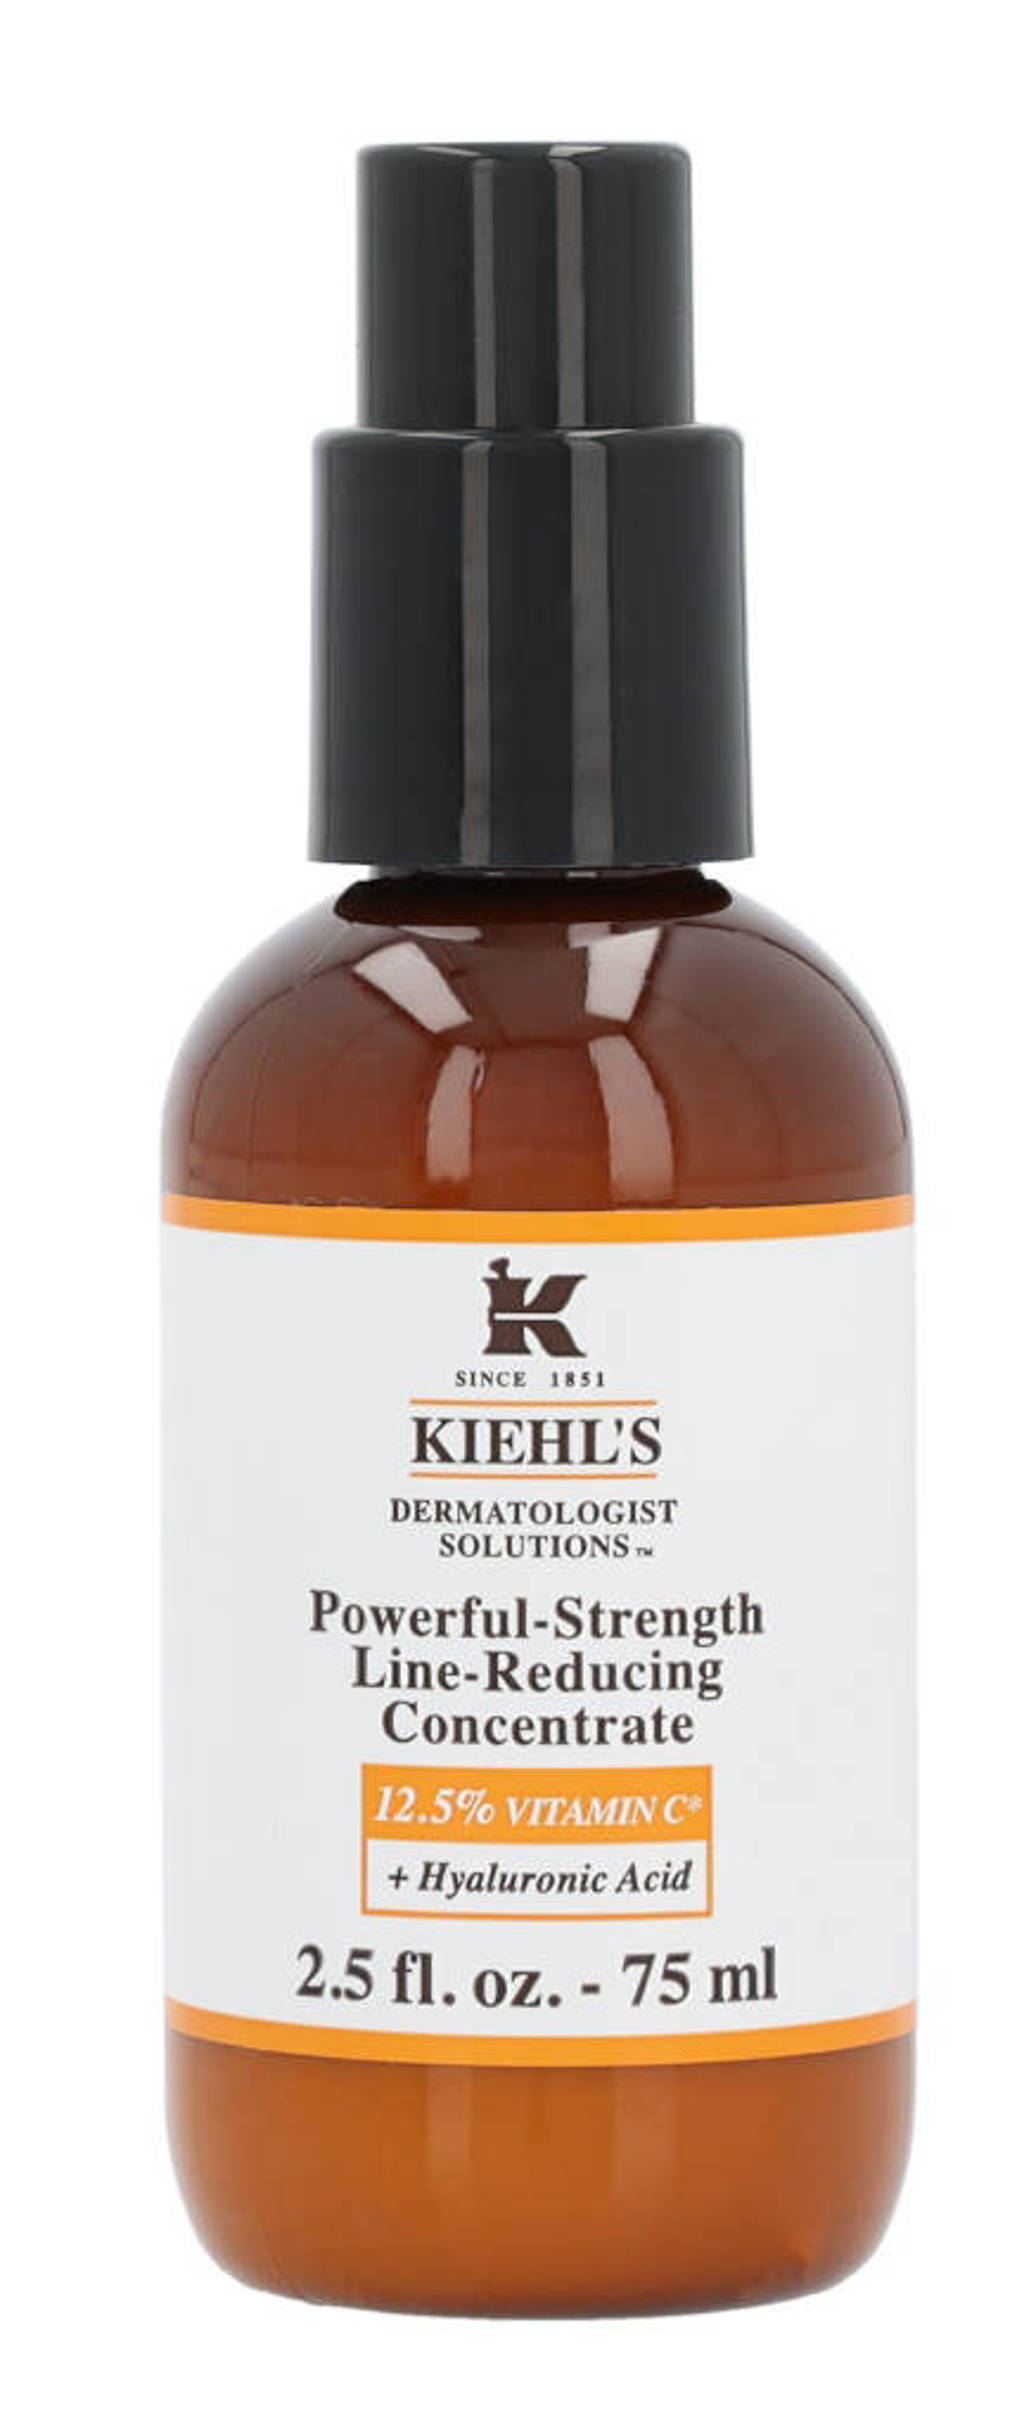 Kiehls Powerful-Strength Line-Reducing Concentrate serum - 75 ml